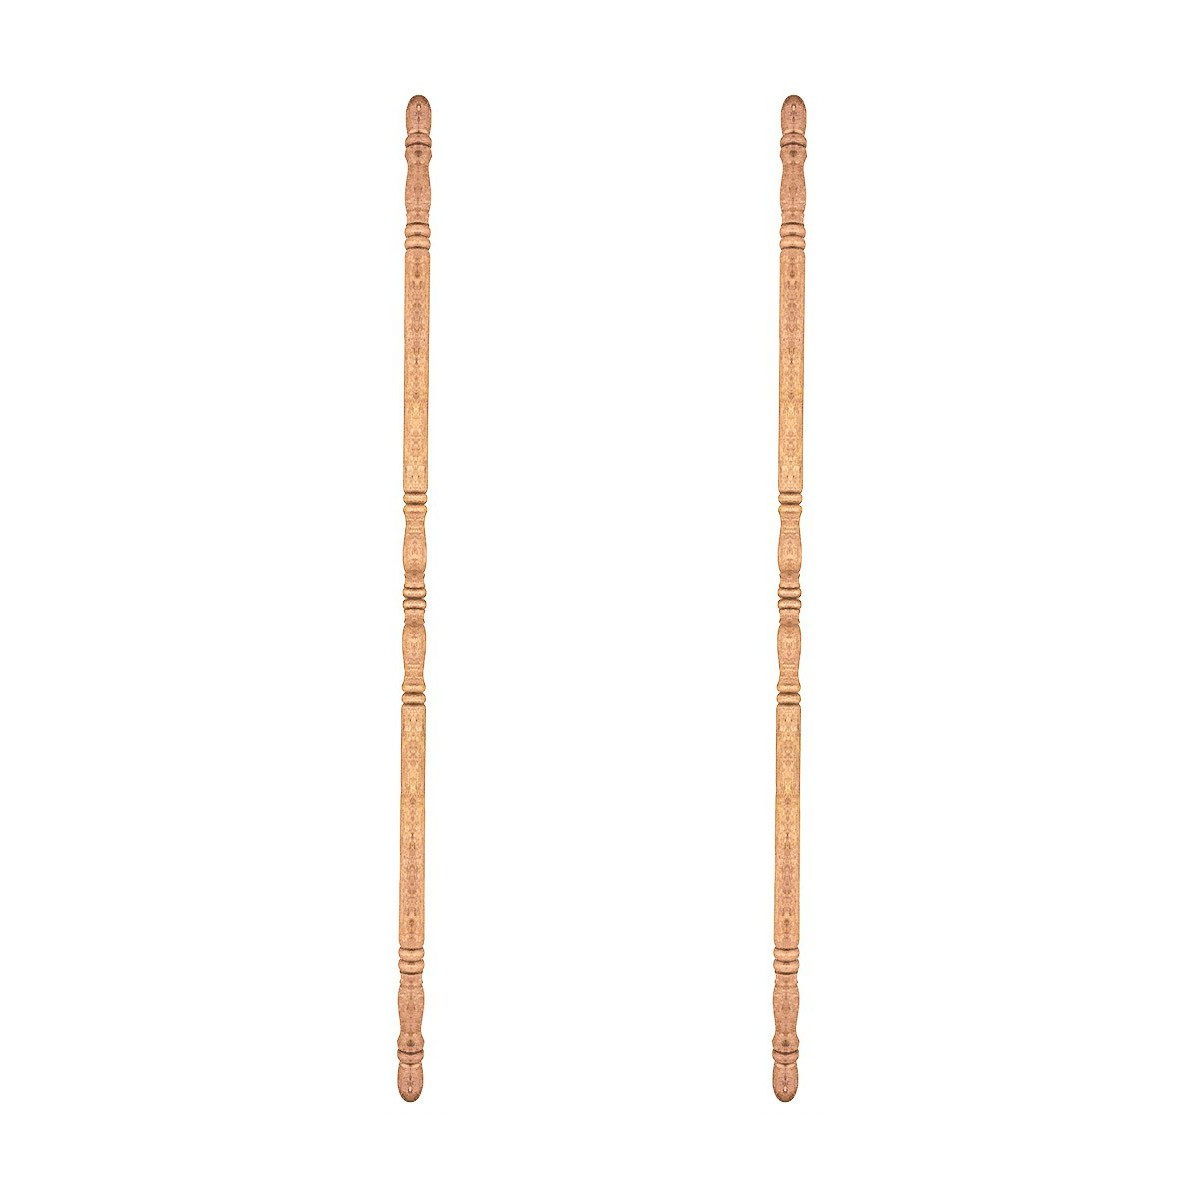 Light Hardwood Corner Guard Unfinished 1 in Diameter Pack of 2 by The Renovator%27s Supply